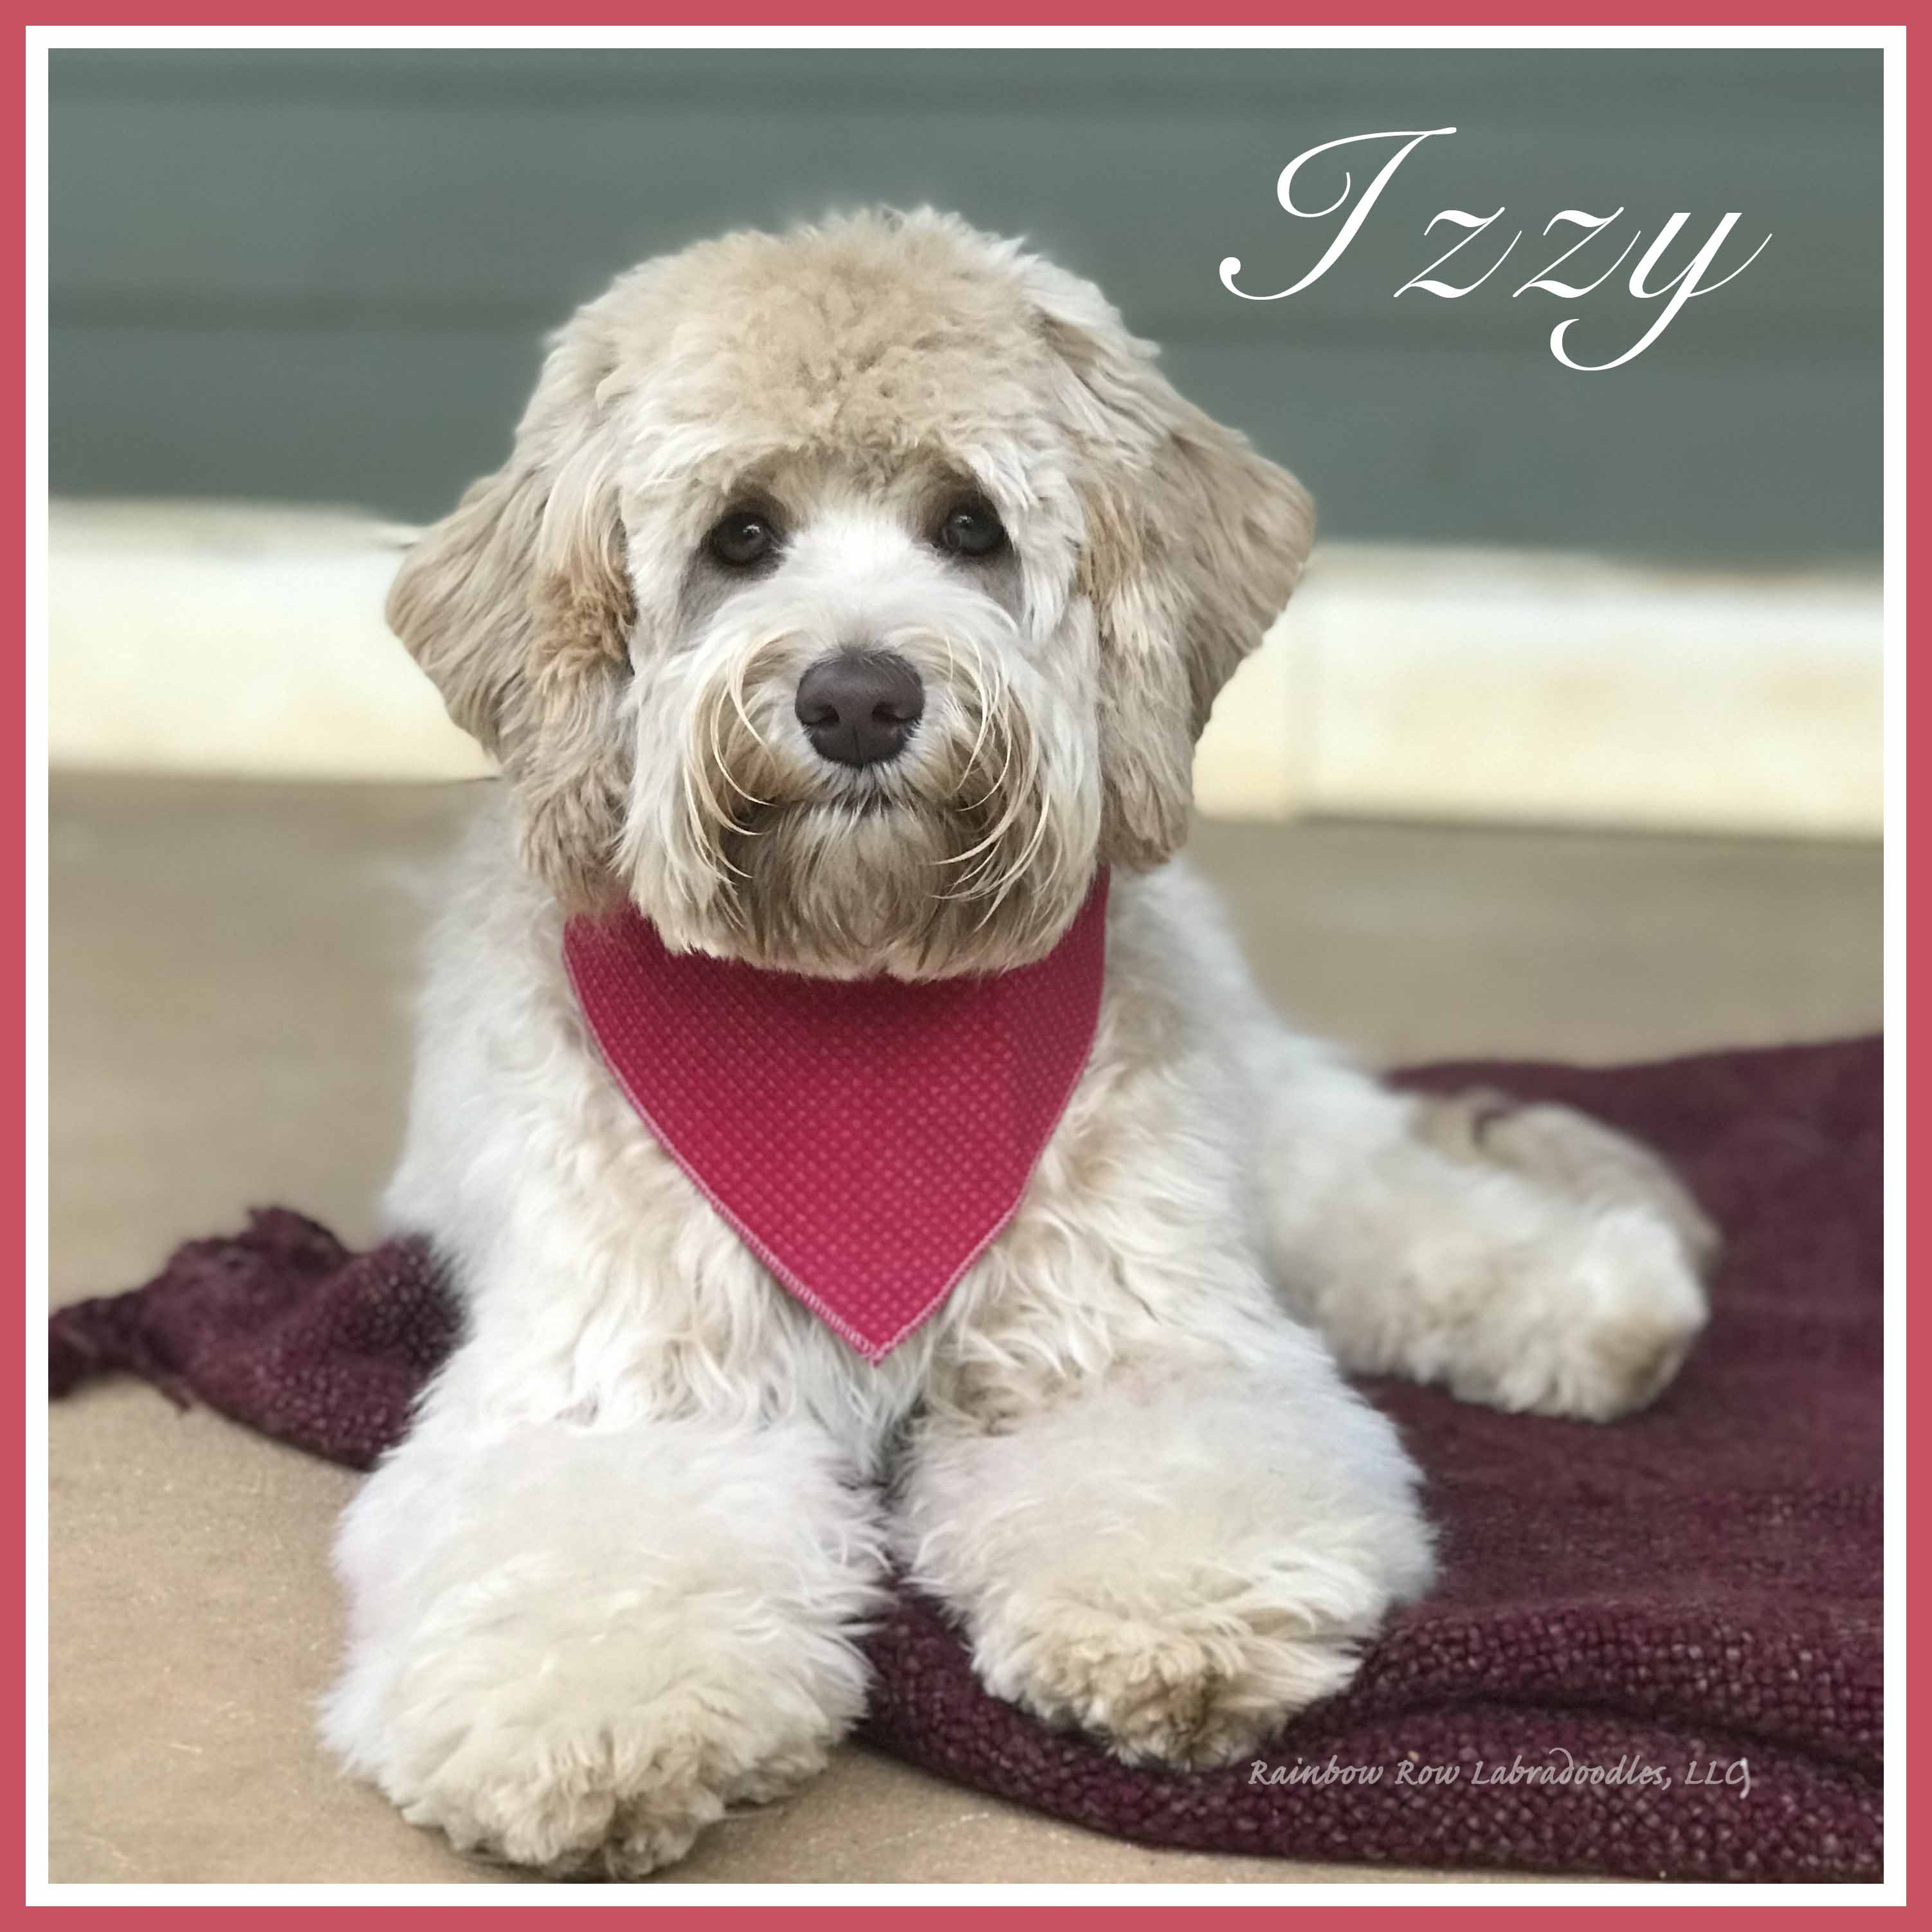 Izzy sq website